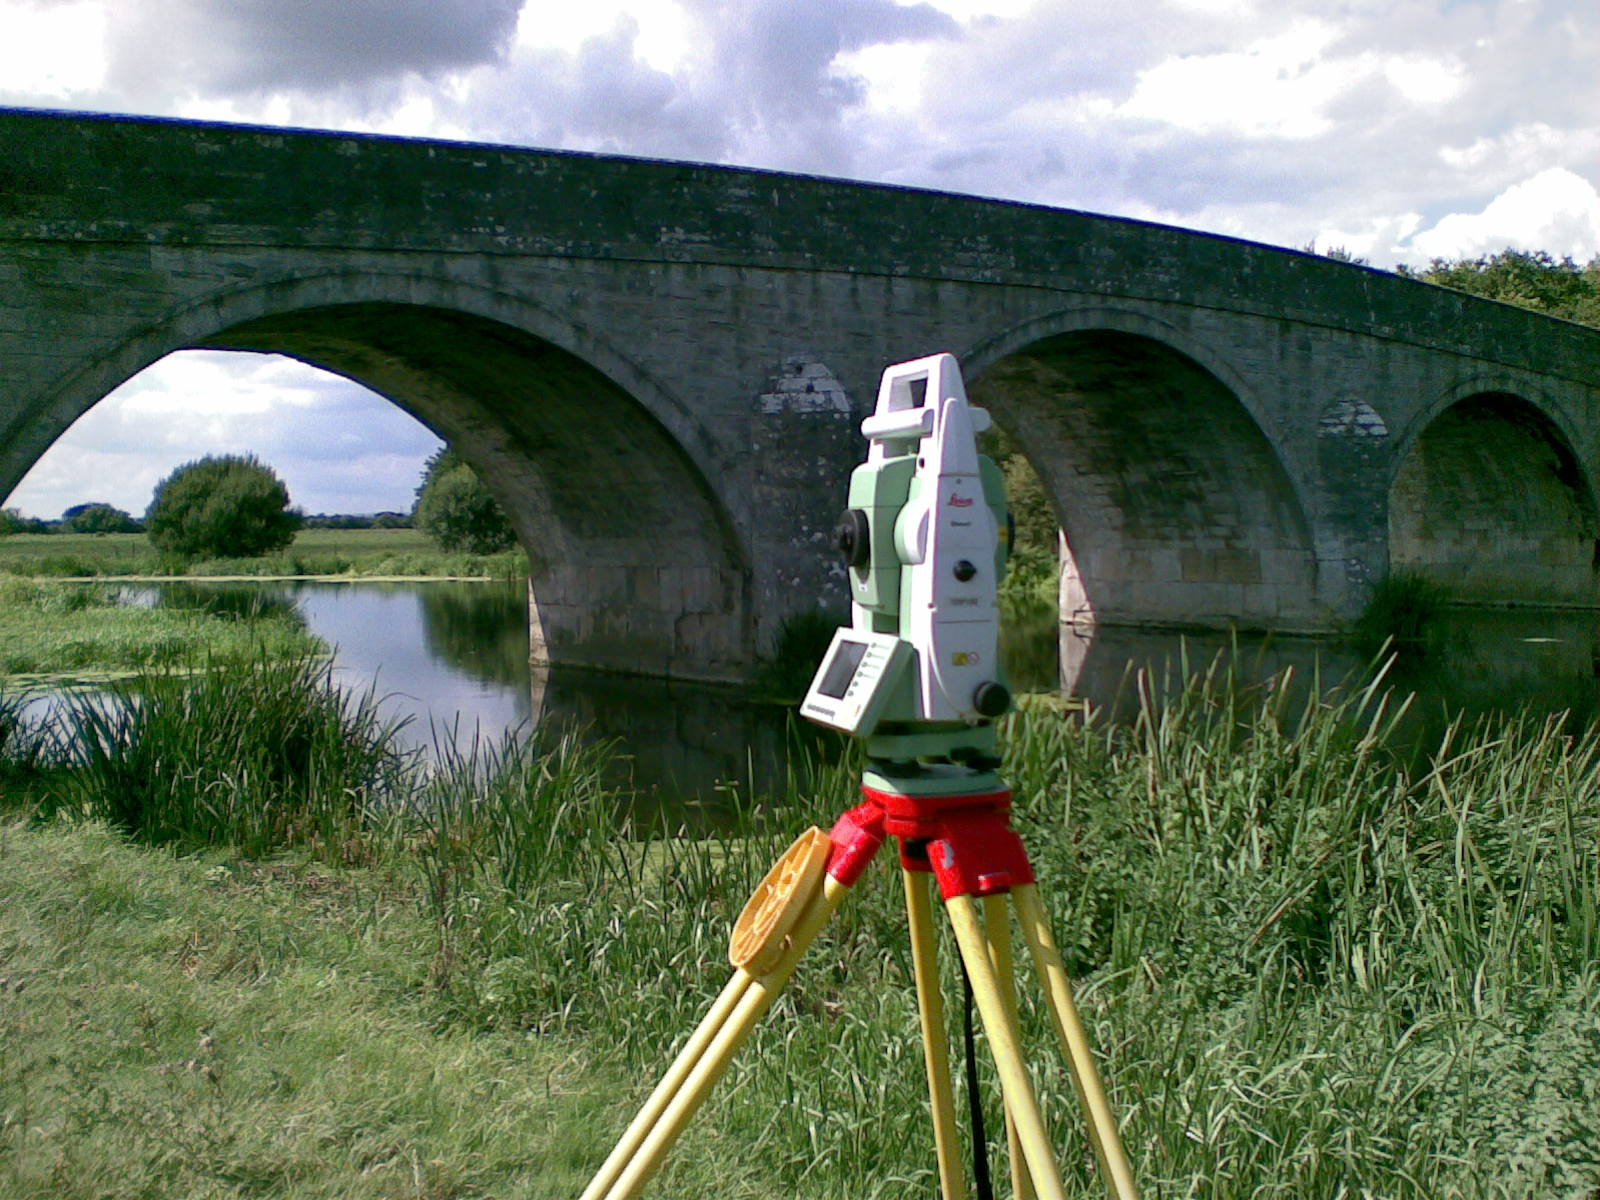 Trigon Survey & Investigations provide a high quality land survey service for new developments, as-built records and boundary disputes. We also produce Land Registry Plans.